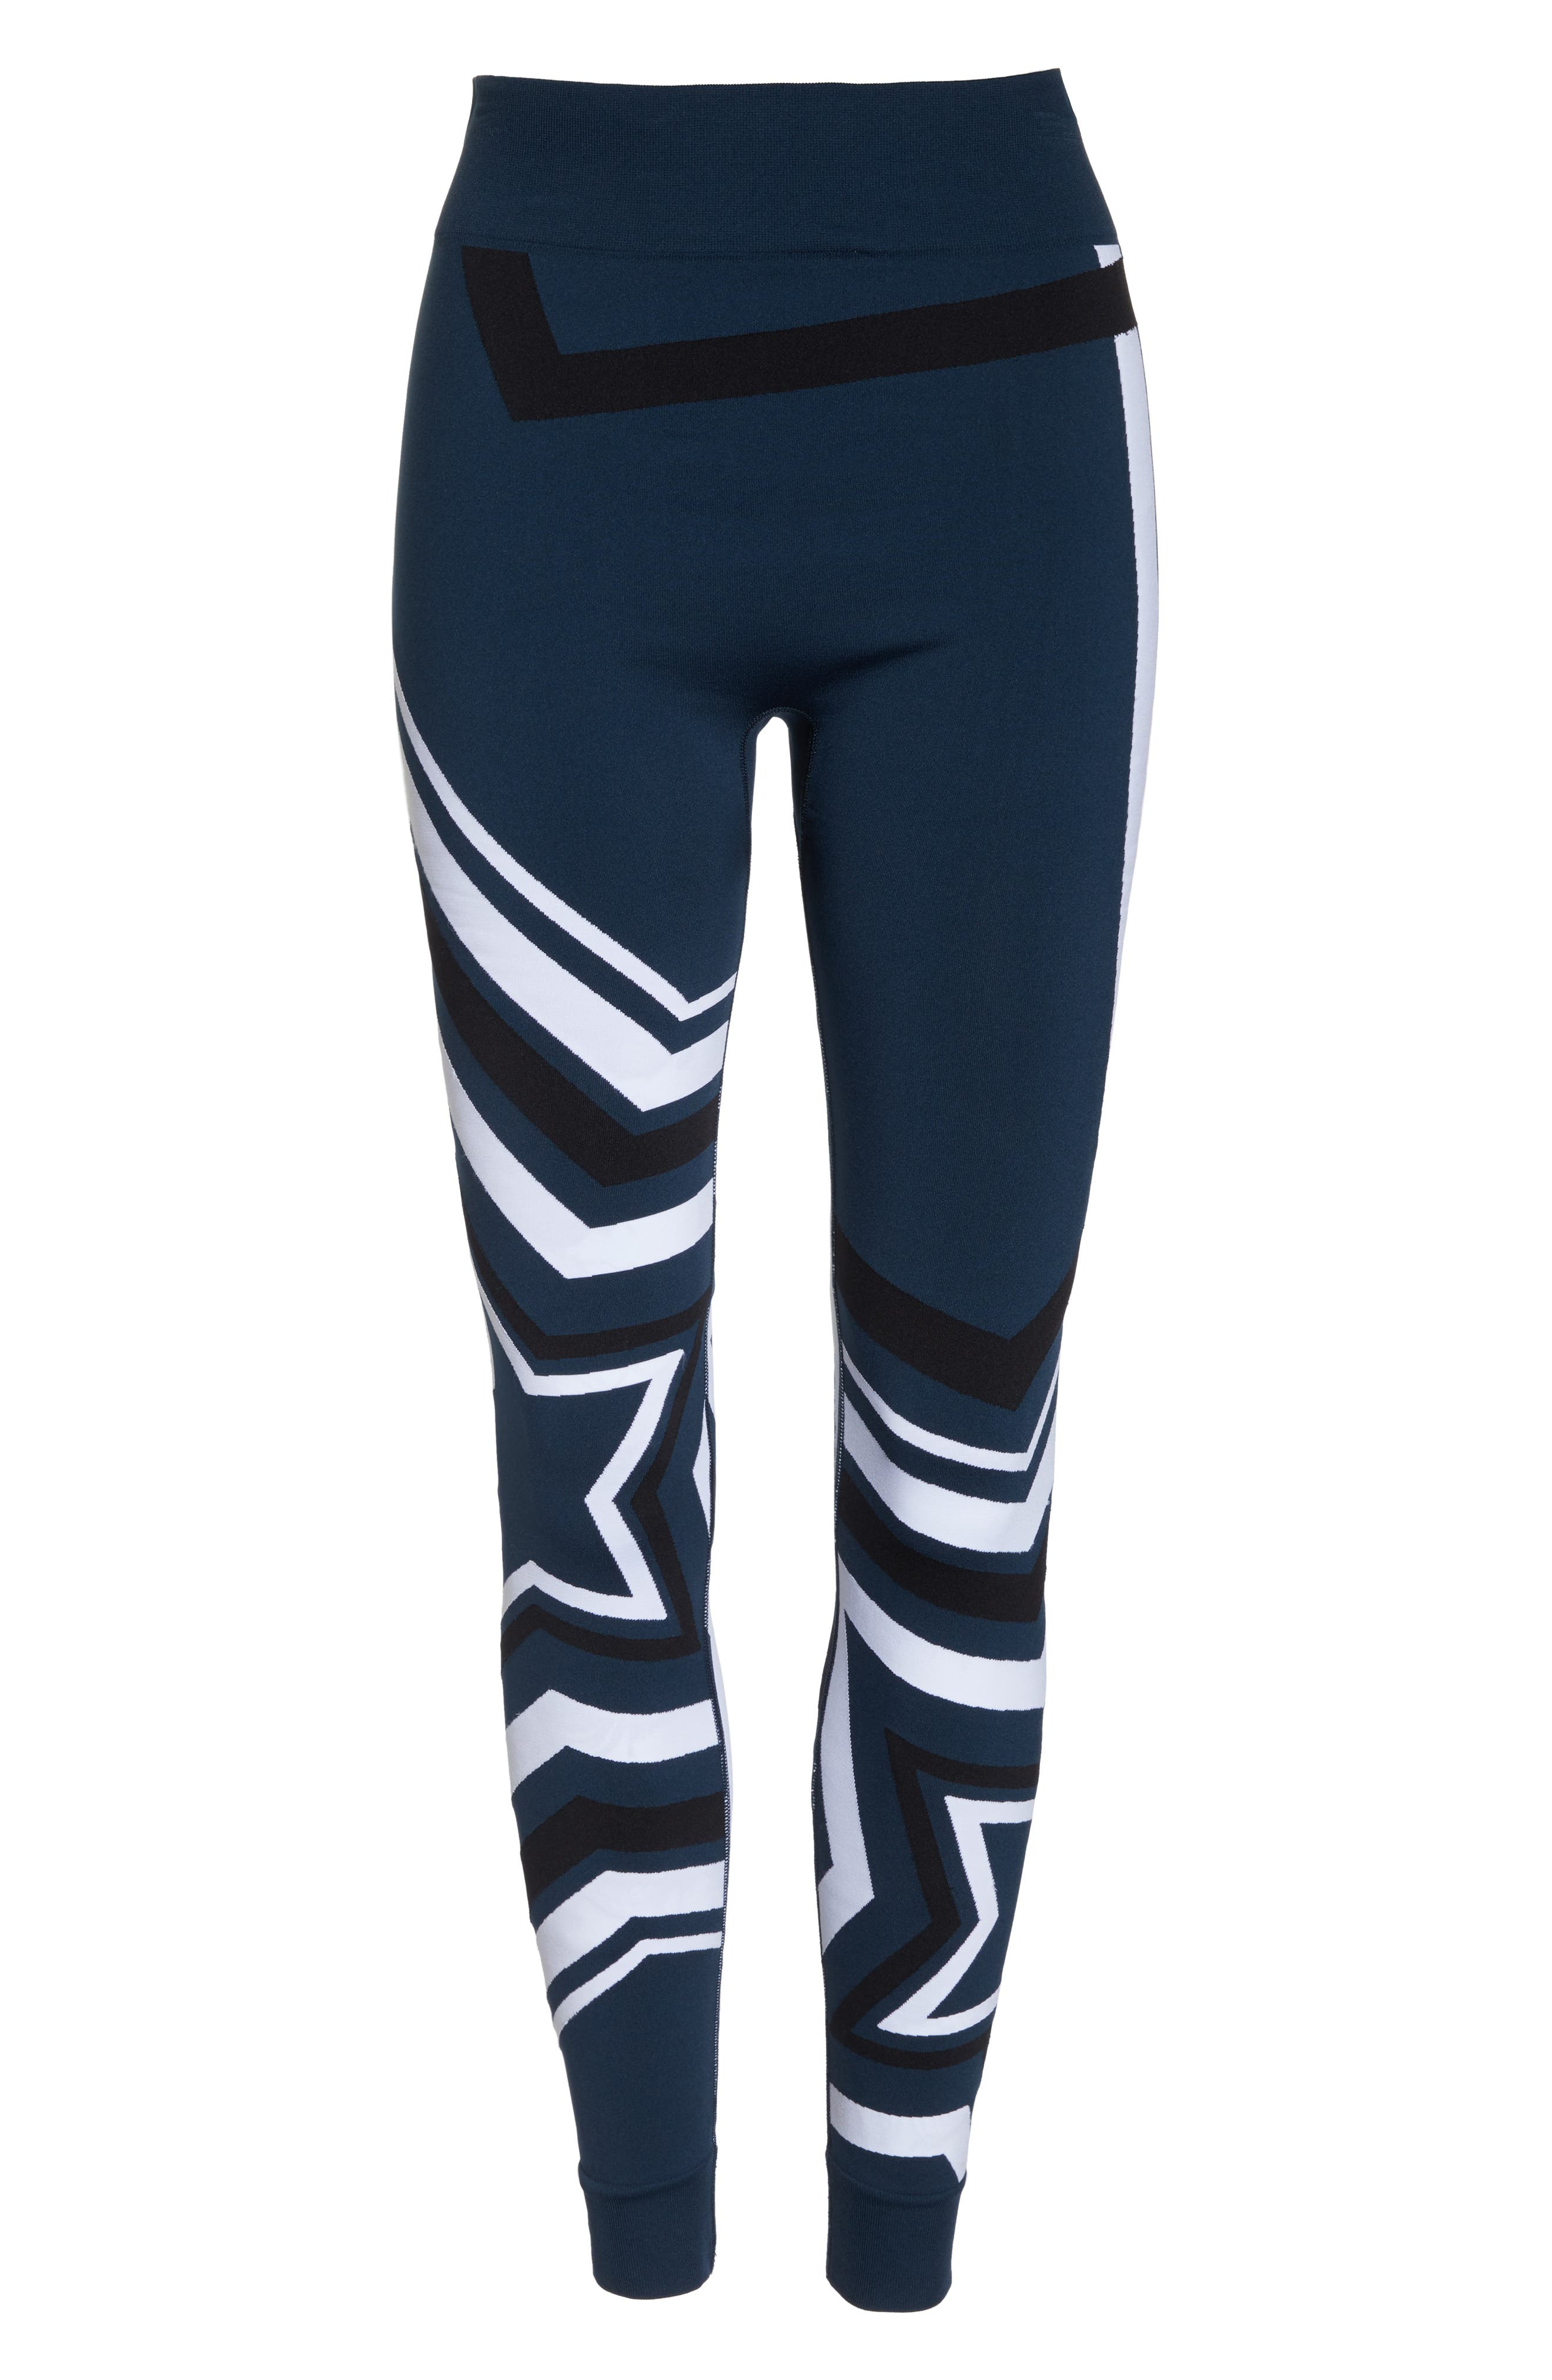 Star Graphic Seamless Leggings,                             Alternate thumbnail 7, color,                             BEETLE BLUE STAR JACQUARD